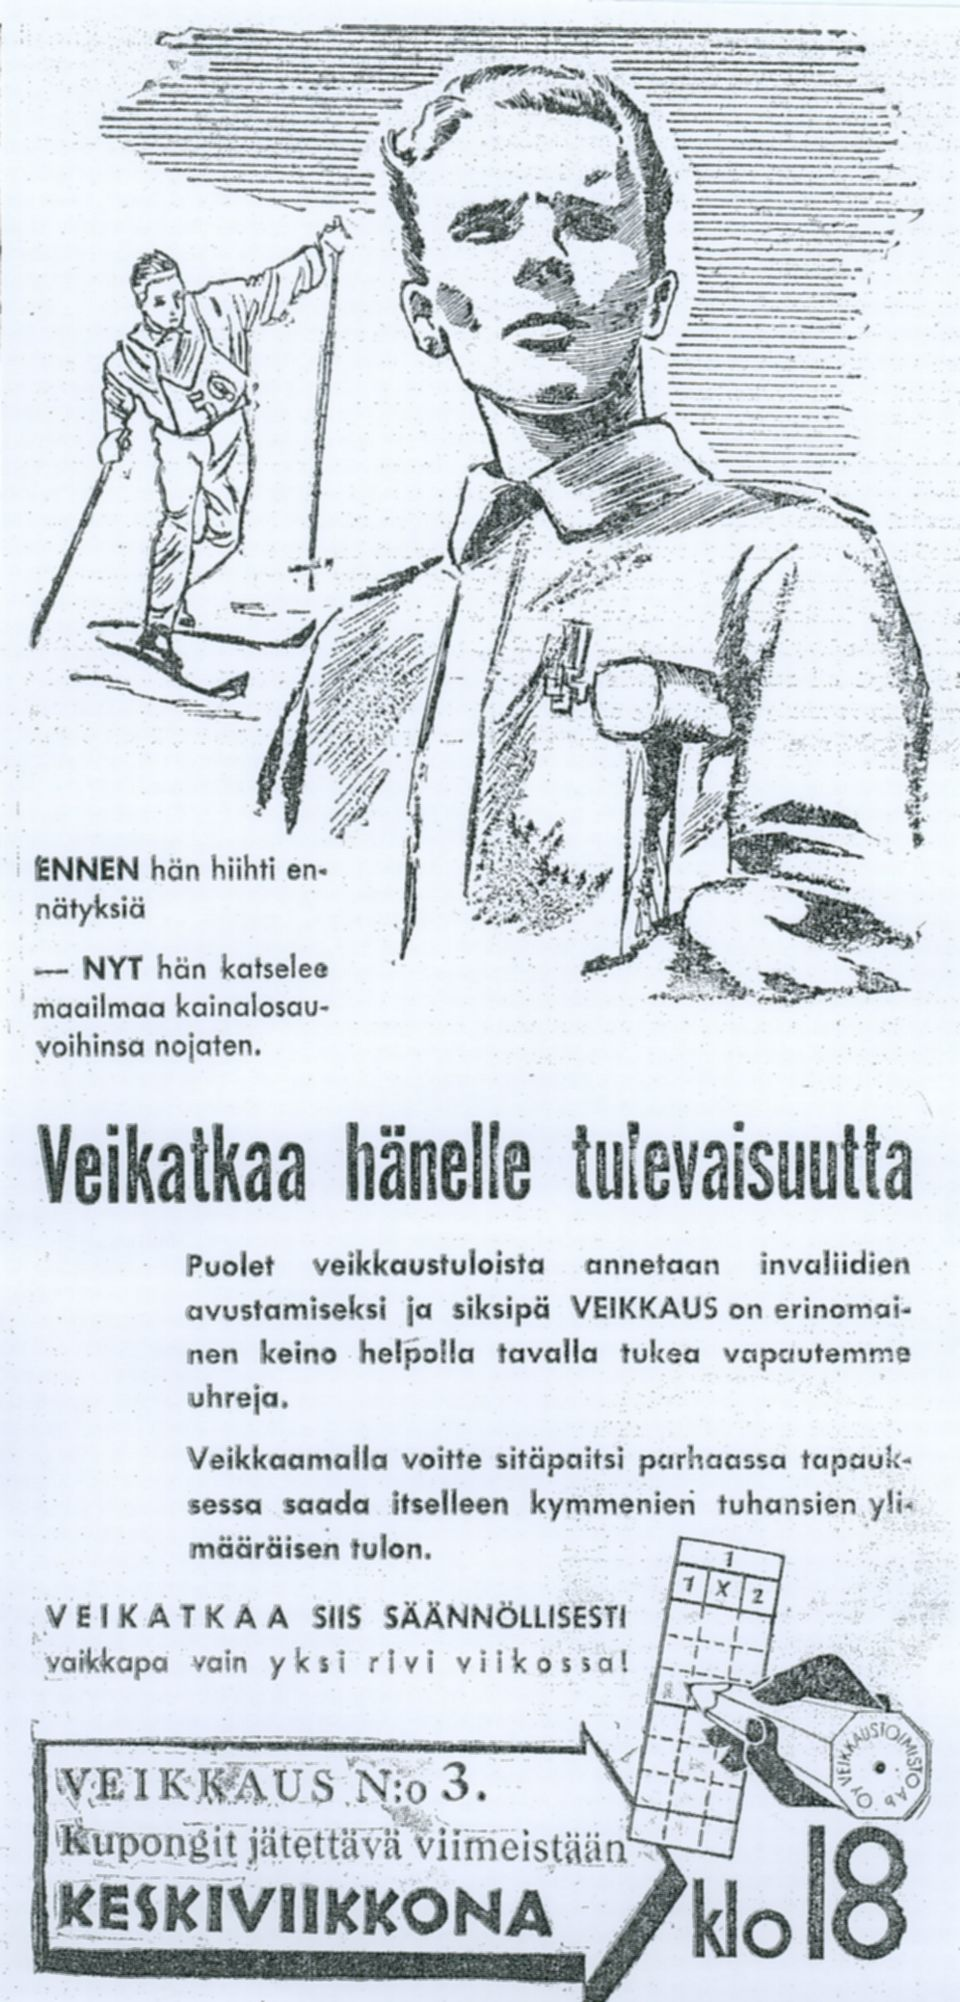 Gambling in Finland: From vice to national virtue | Yle